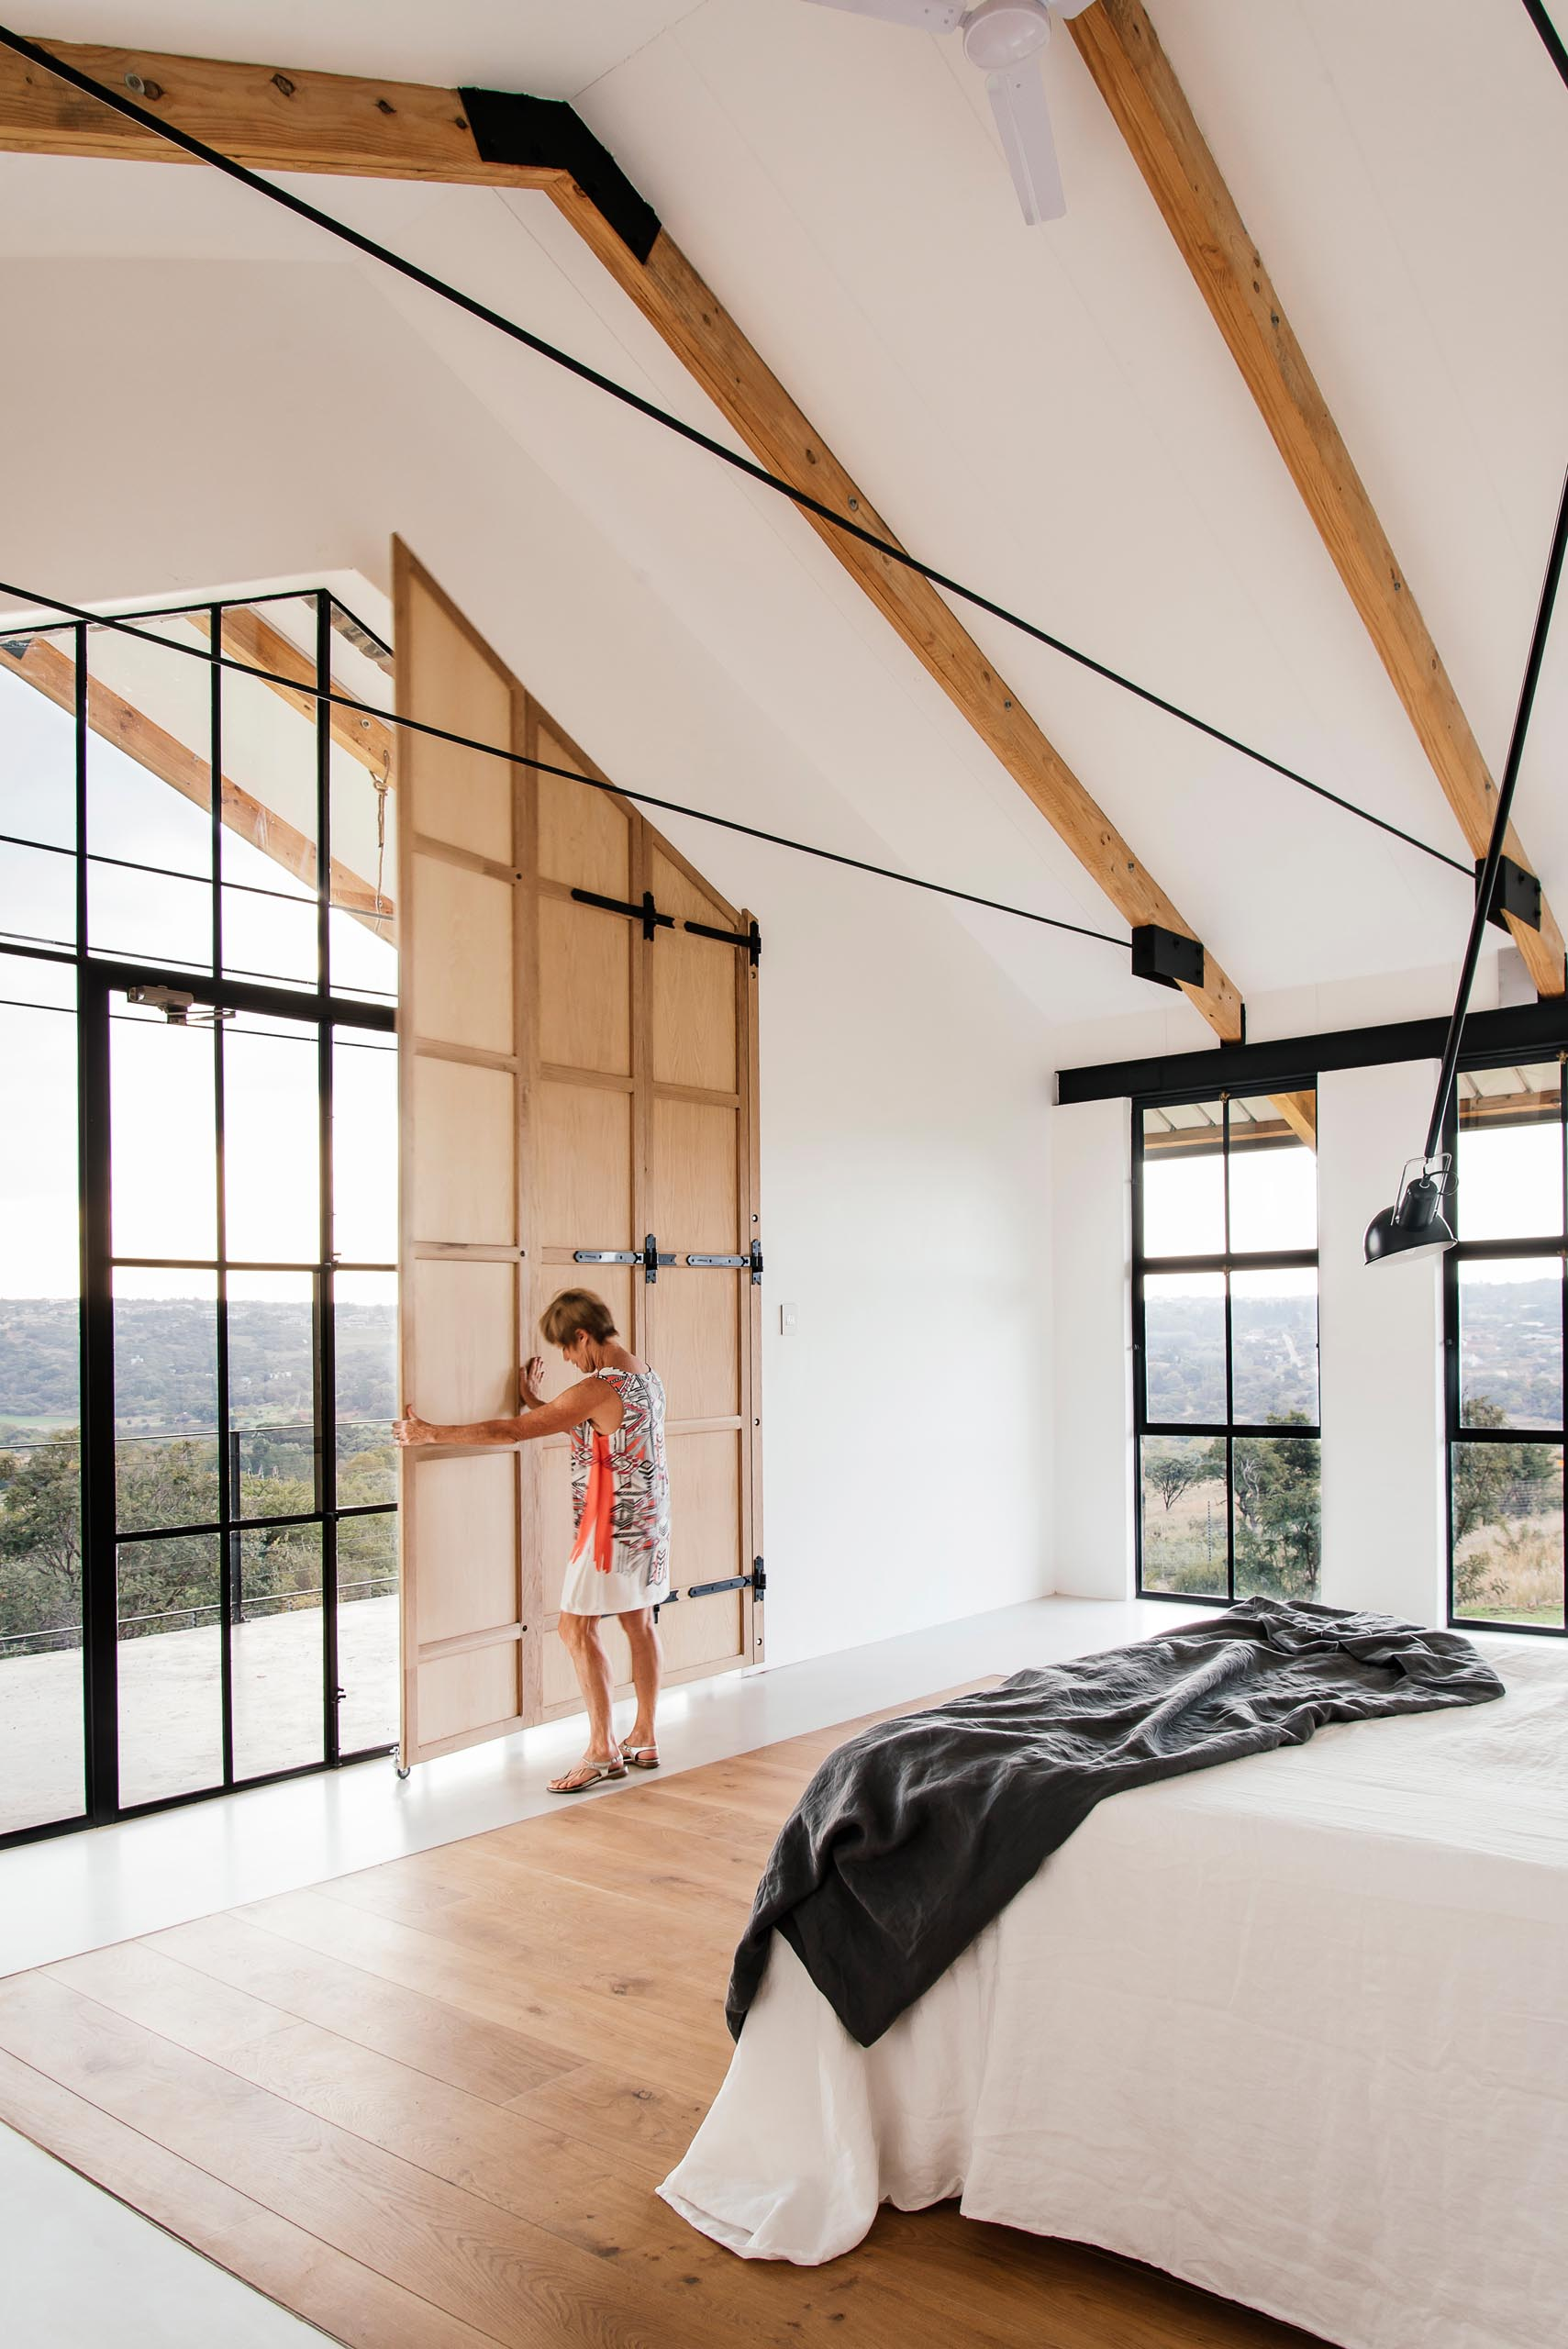 This primary bedroom is minimally furnished and positioned to enjoy bird watching into the tree canopy and sunset views. The large overhanging patio and timber shutters assist in eliminating unwanted afternoon sun.